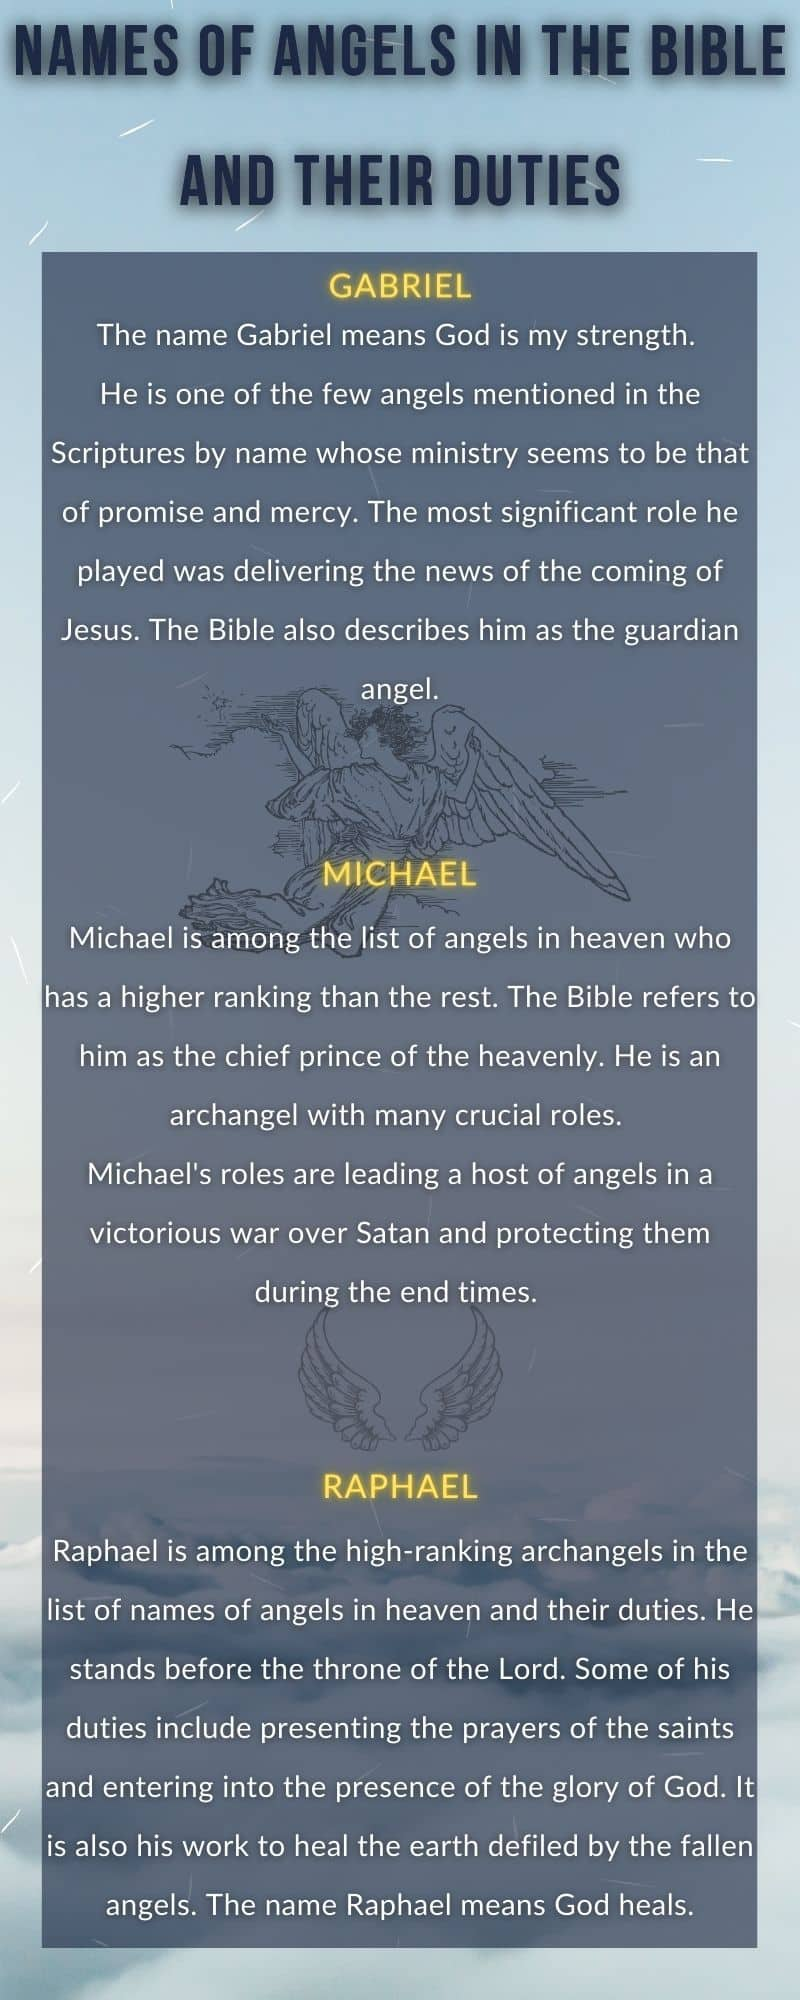 Names of angels in the Bible